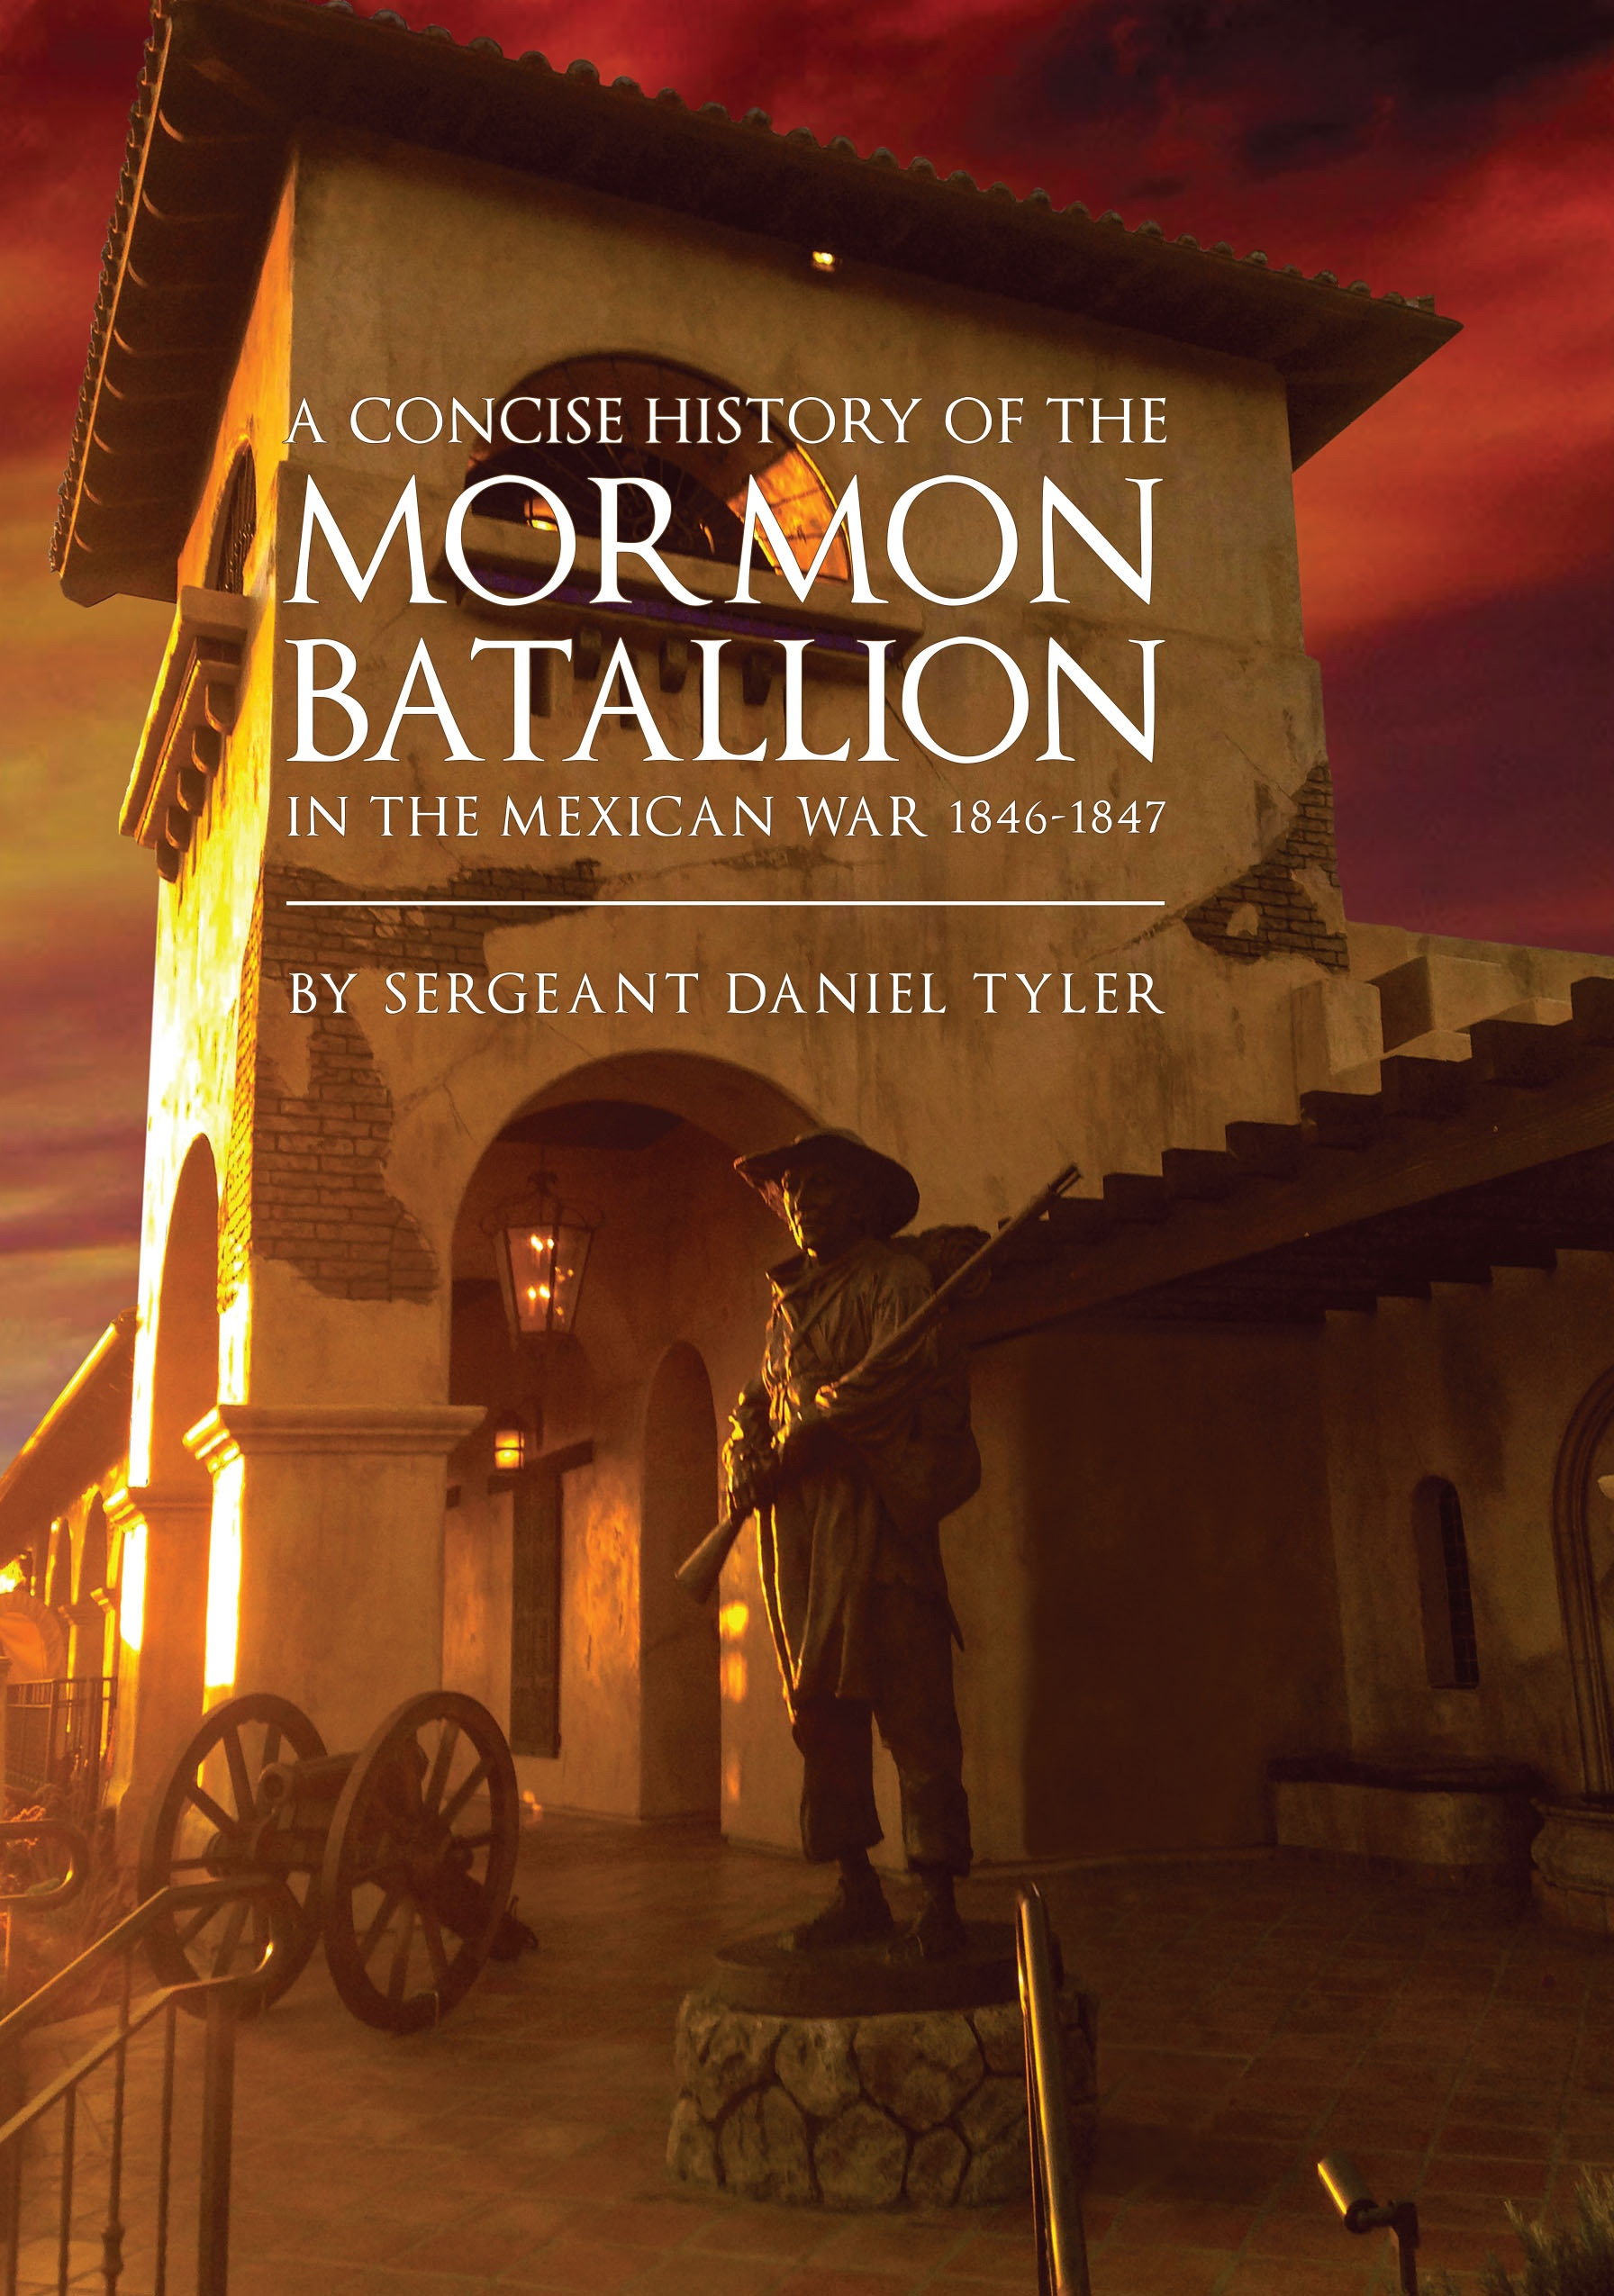 A CONCISE HISTORY OF THE MORMON BATTALION IN THE MEXICAN WAR 1846-1847, Tyler, Sgt. Daniel